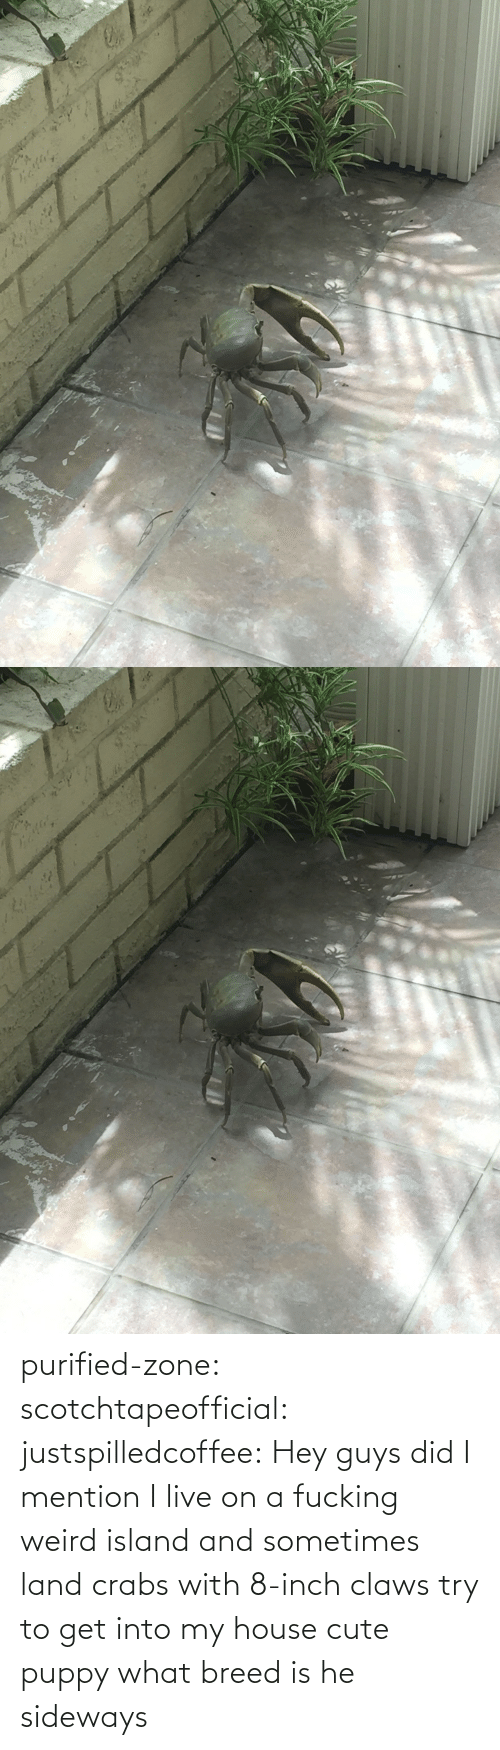 Cute, My House, and Target: purified-zone: scotchtapeofficial:  justspilledcoffee:  Hey guys did I mention I live on a fucking weird island and sometimes land crabs with 8-inch claws try to get into my house  cute puppy what breed is he  sideways